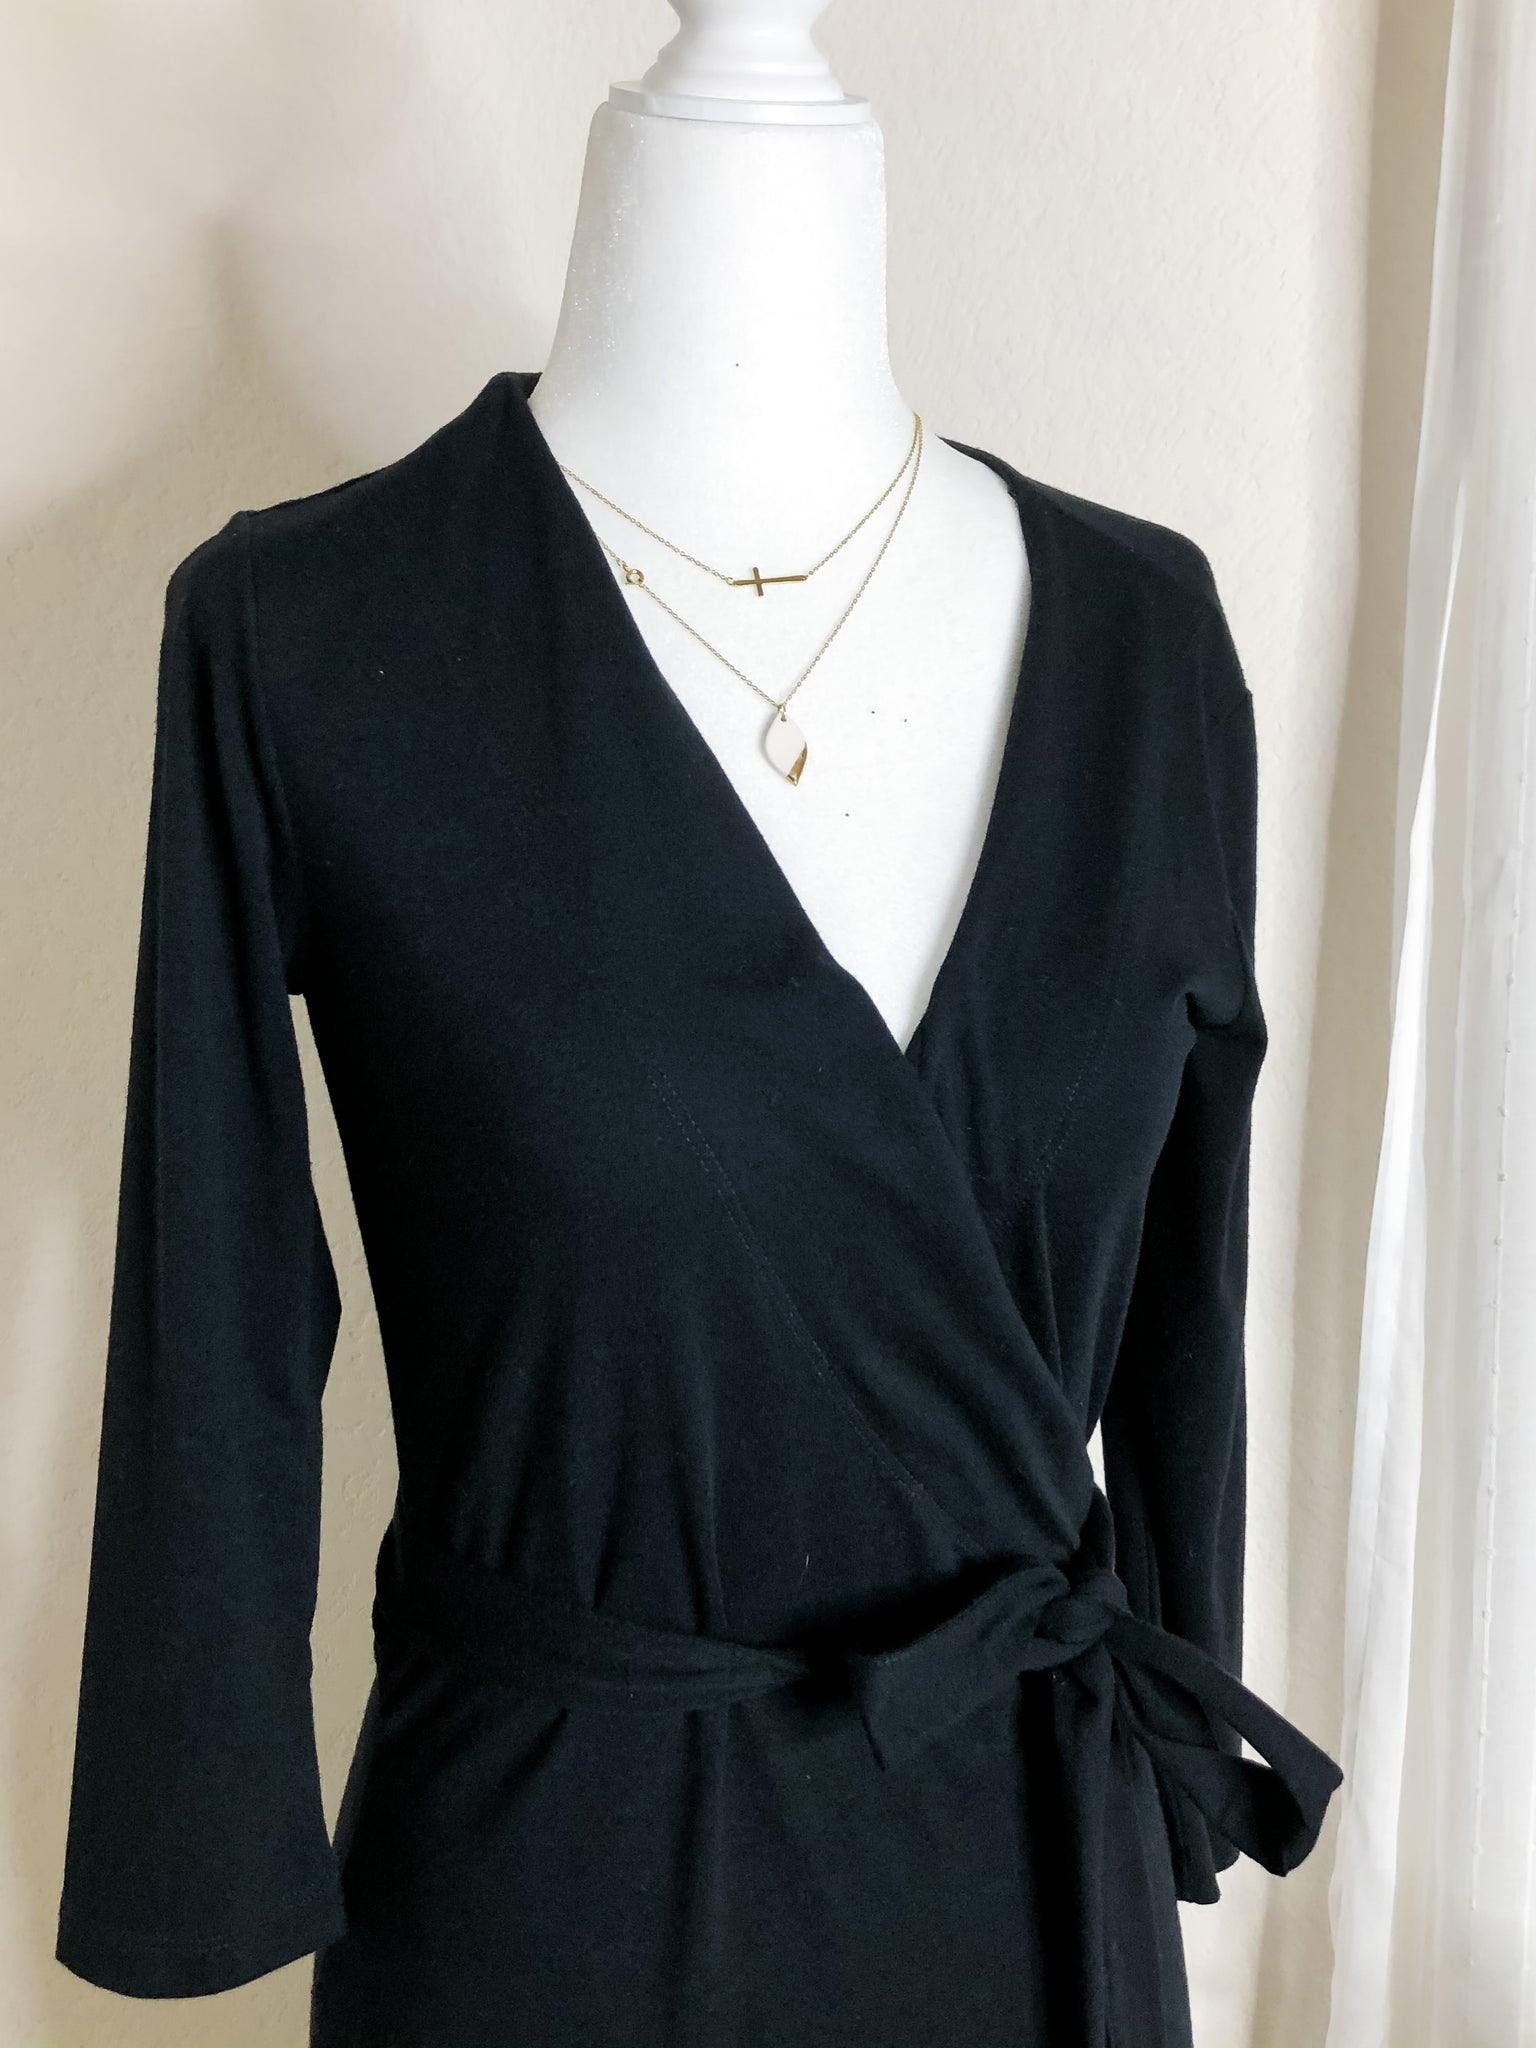 Gap Classic Black Wrap Dress XS